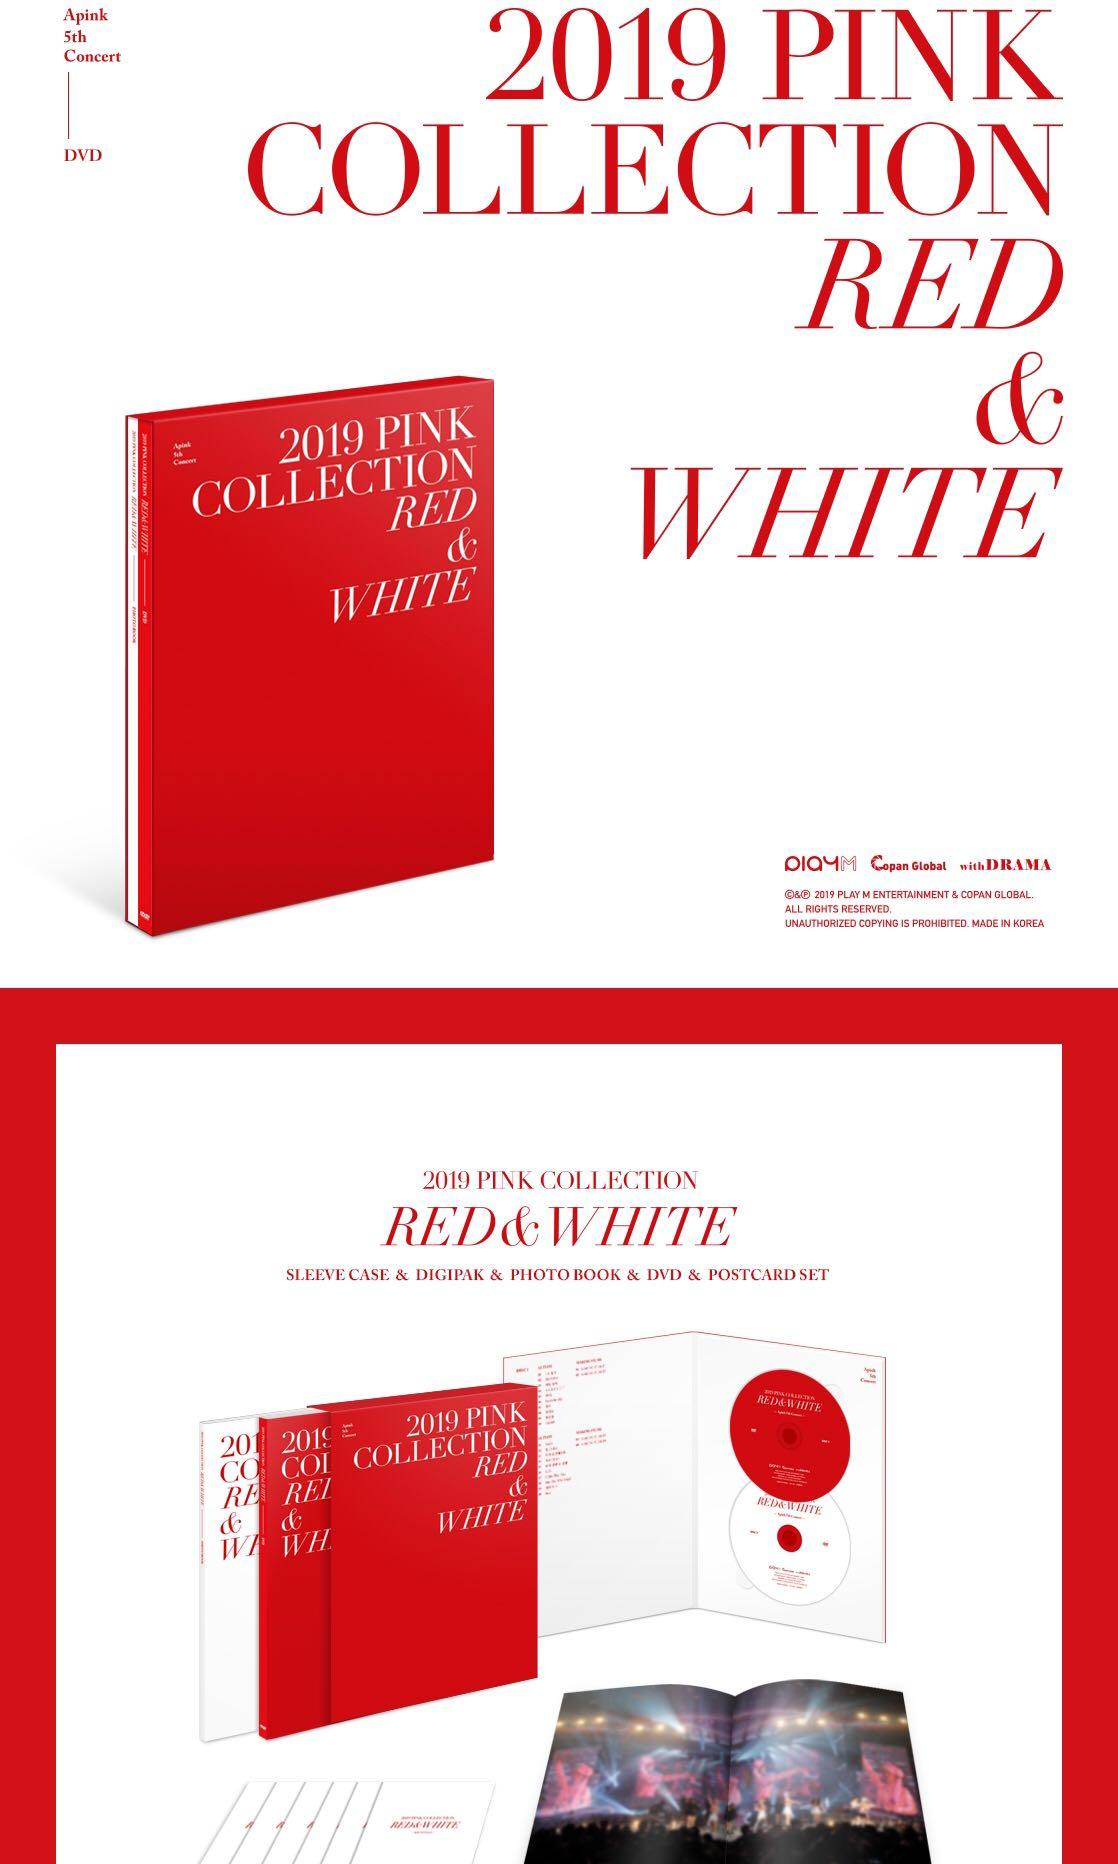 APINK - 5th Concert Pink Collection (Red & White) DVD